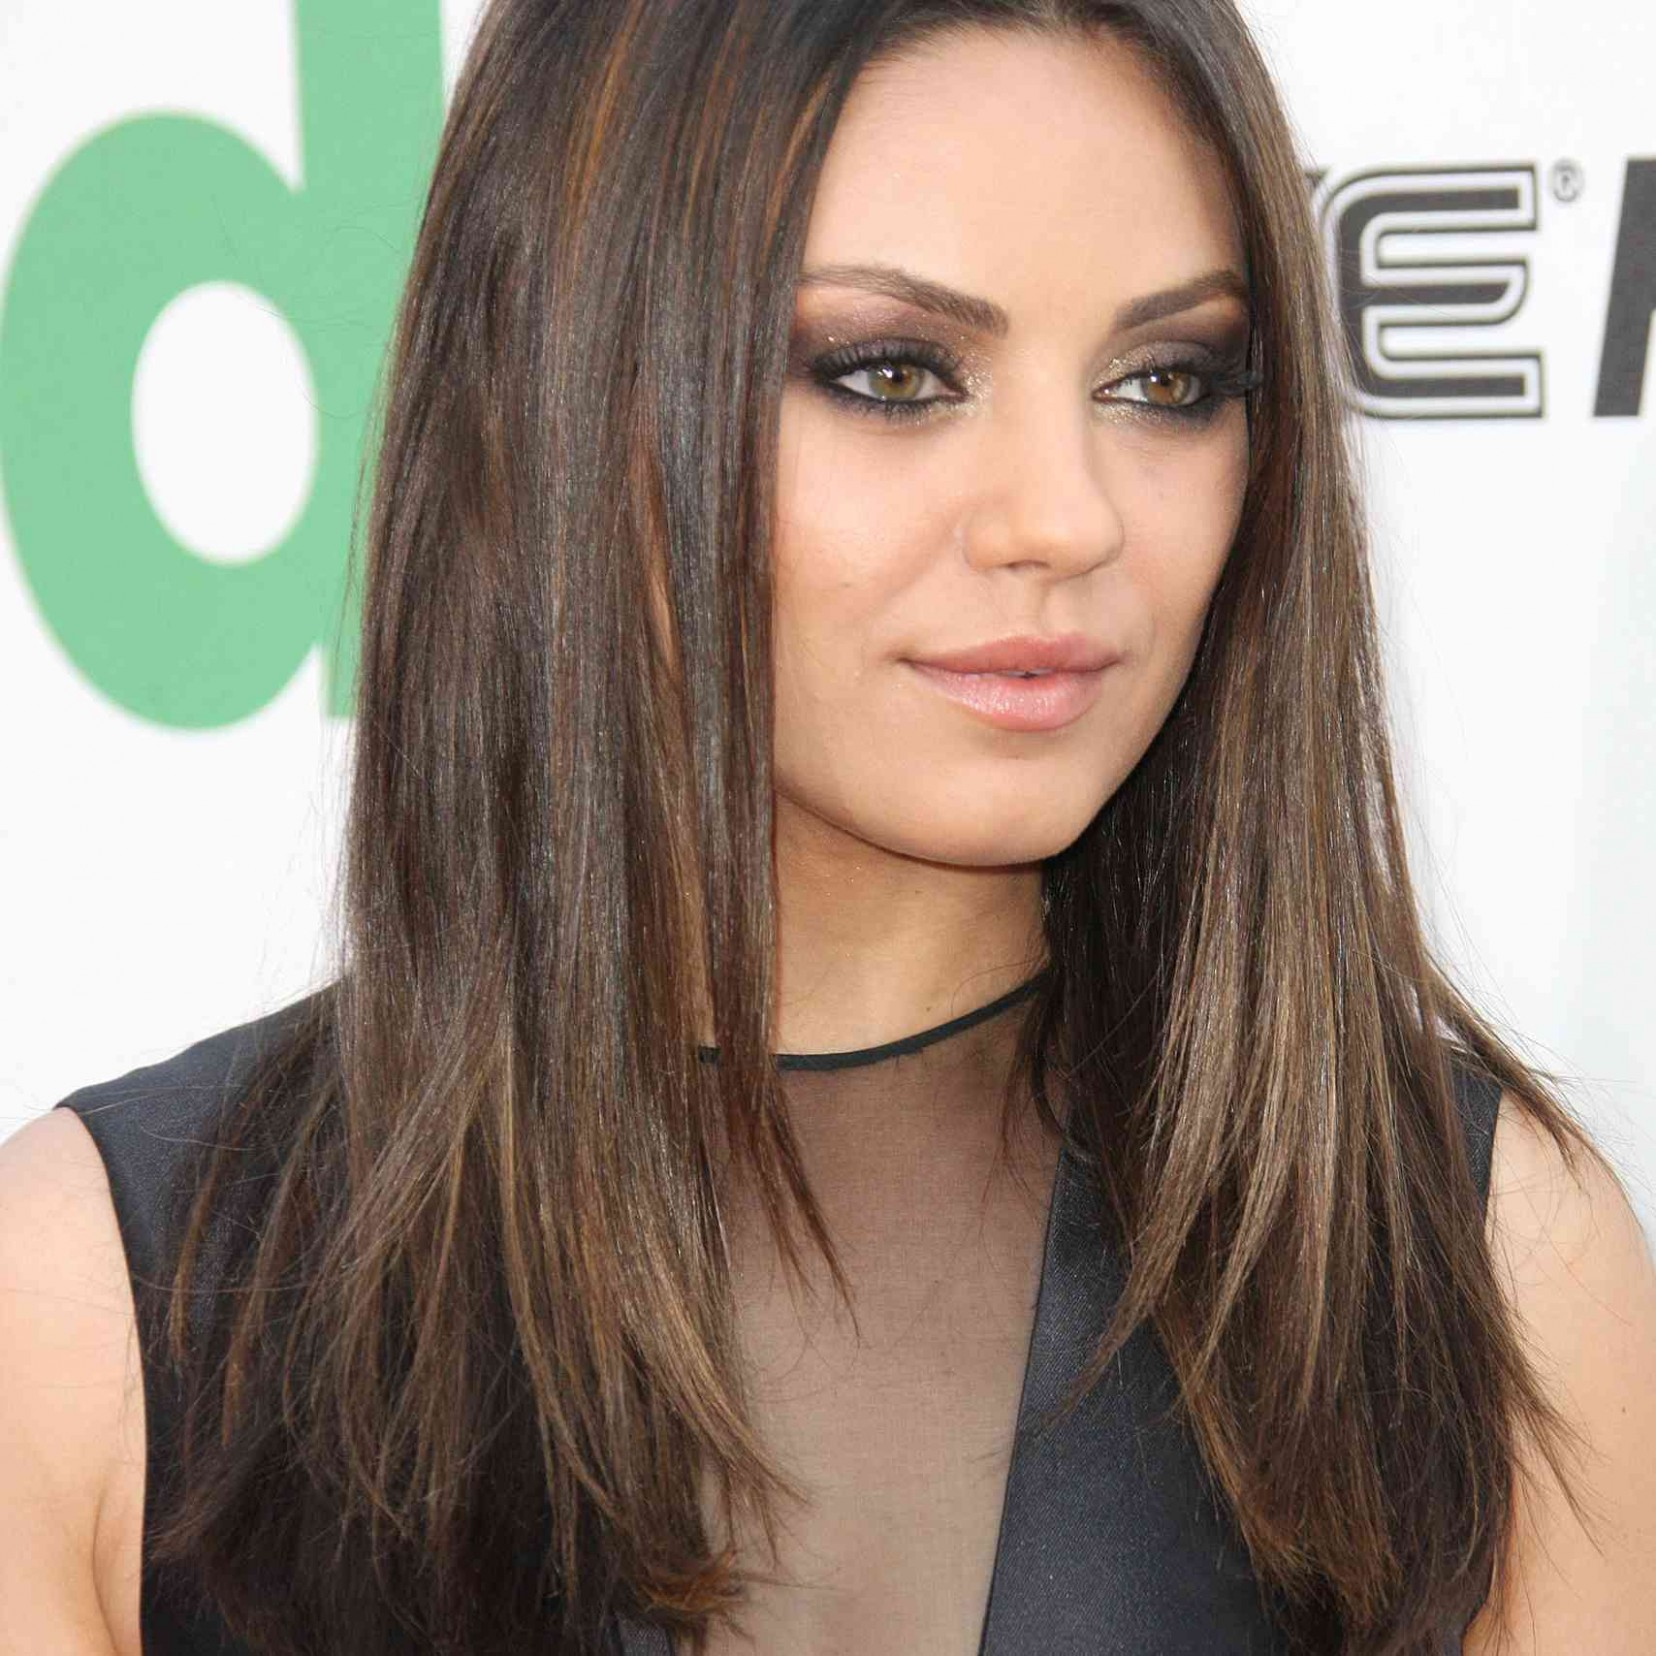 8 Of The Best Hairstyles For Round Faces Long Hairstyles For Fat Faces